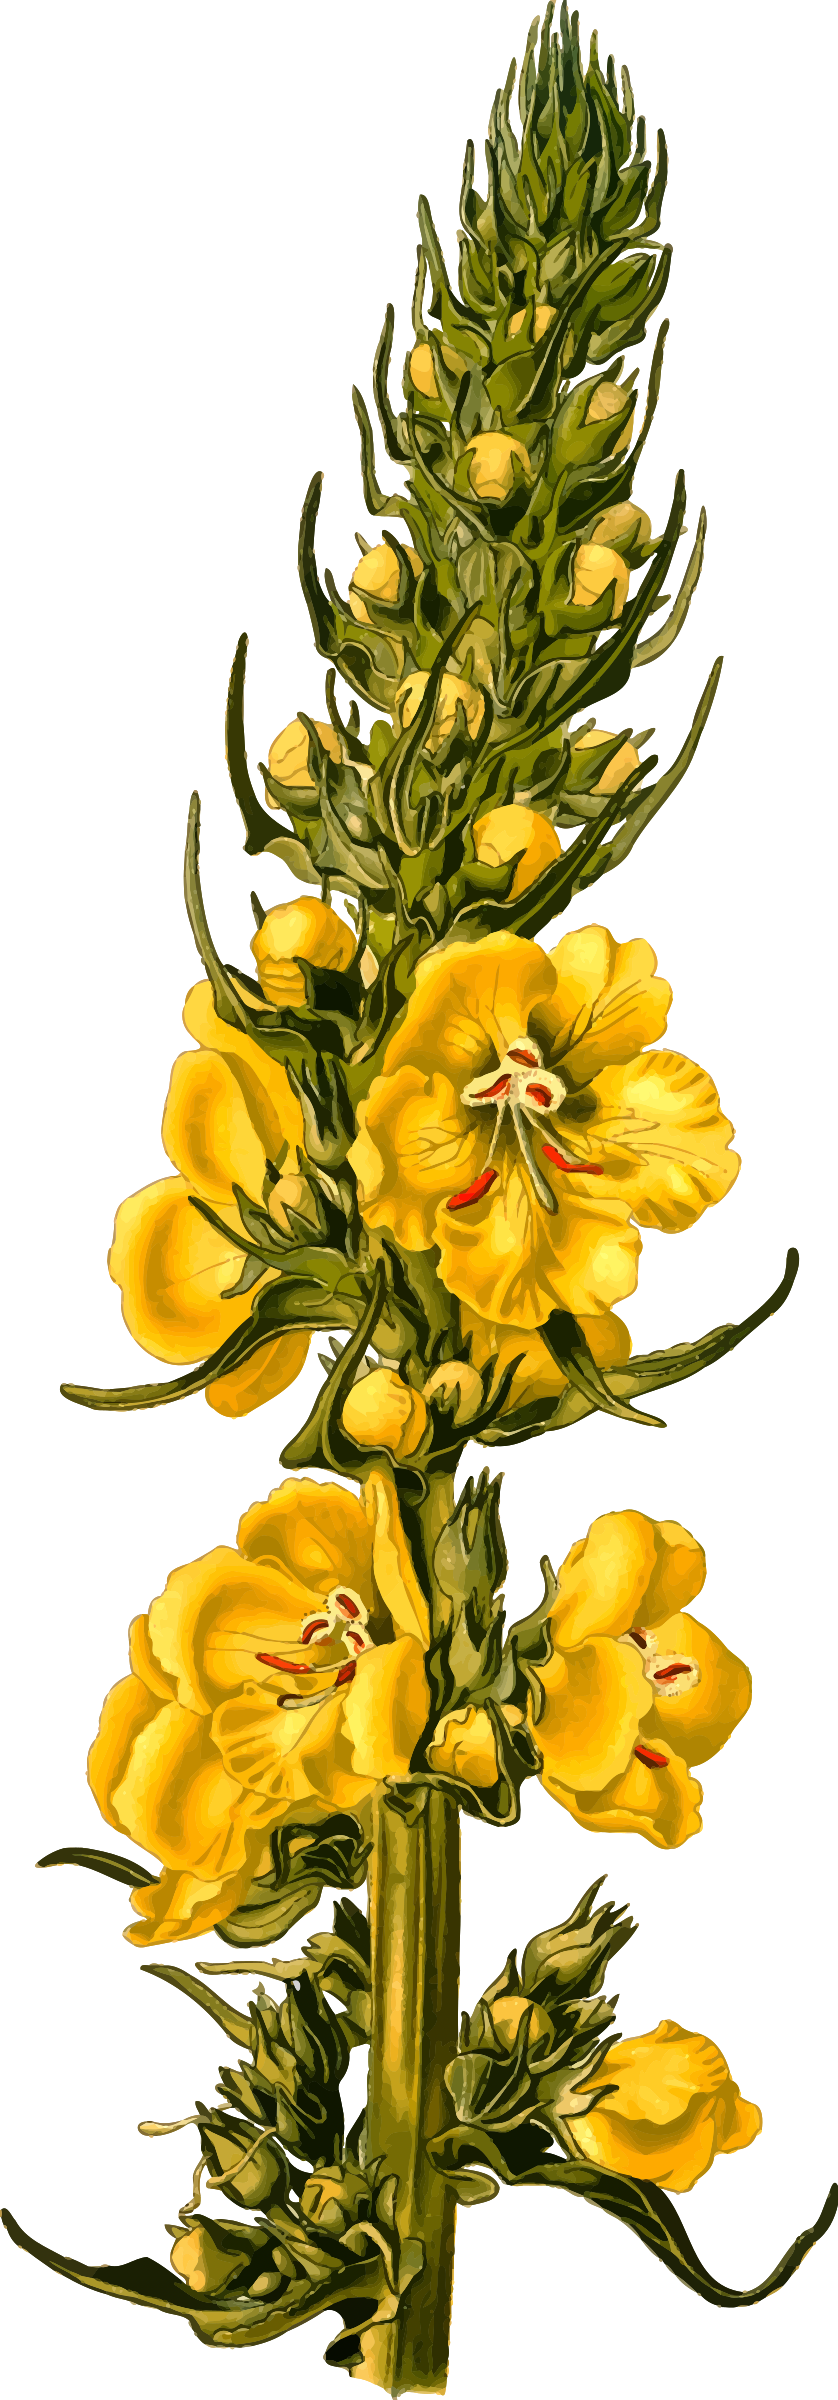 Orange mullein (detailed) by Firkin